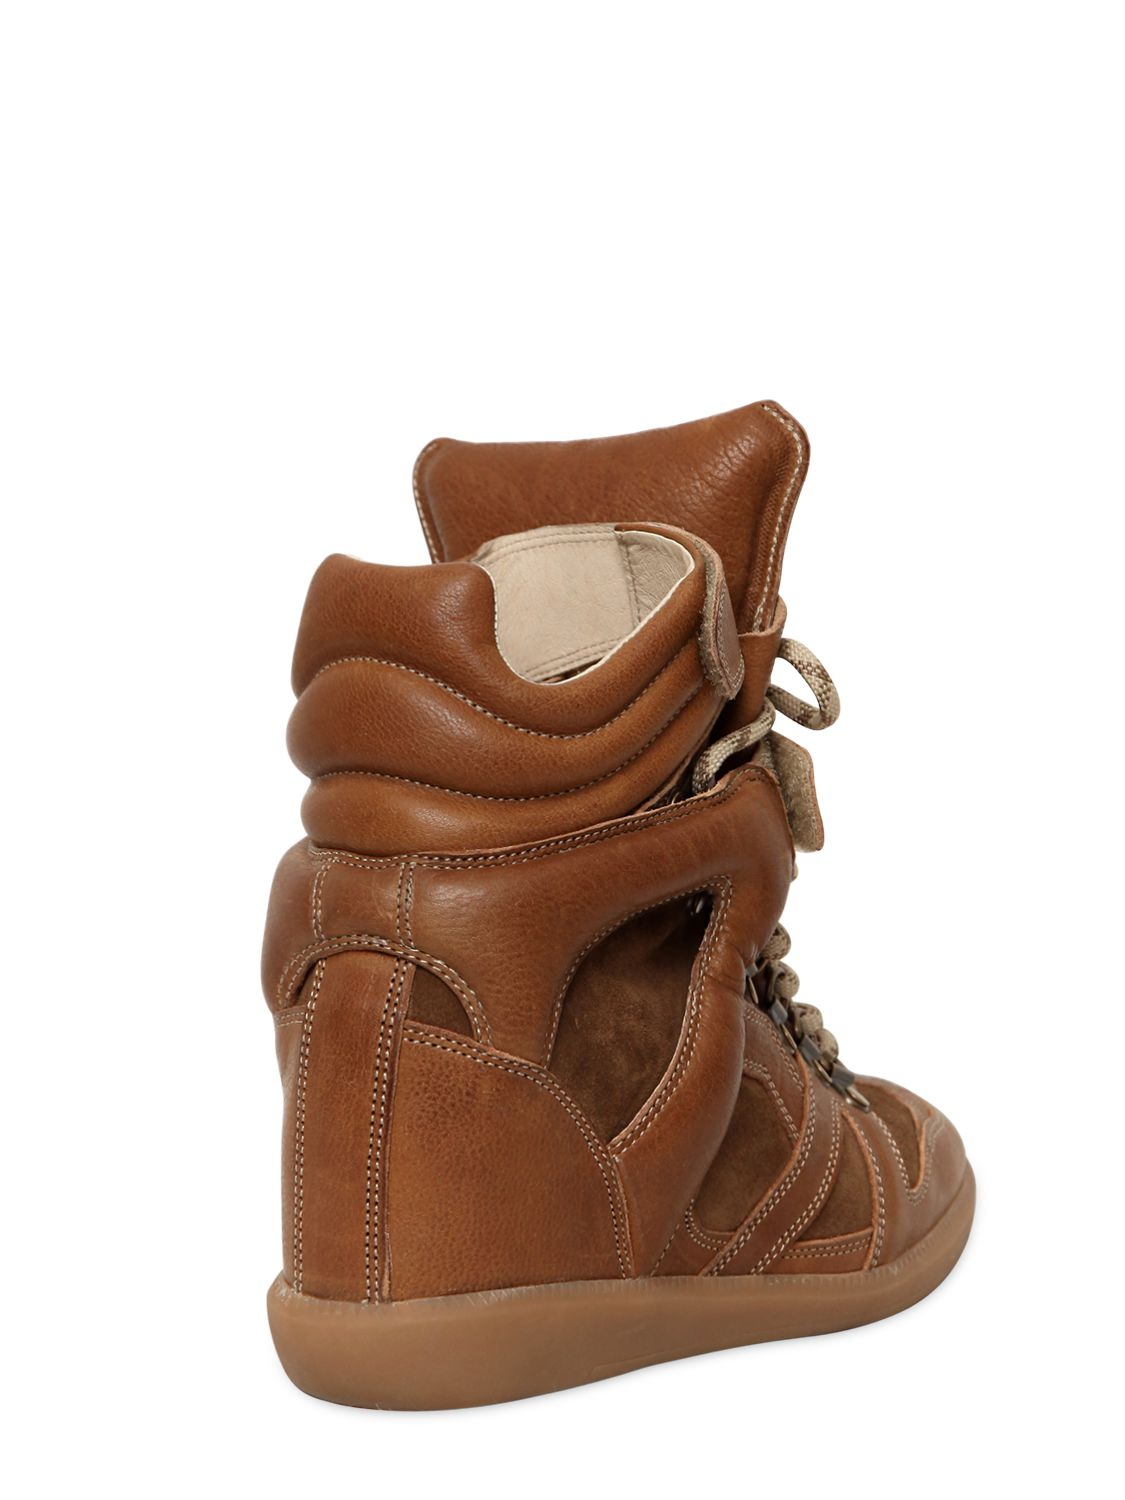 Isabel Marant Leather 'Buck' Sneakers in Brown